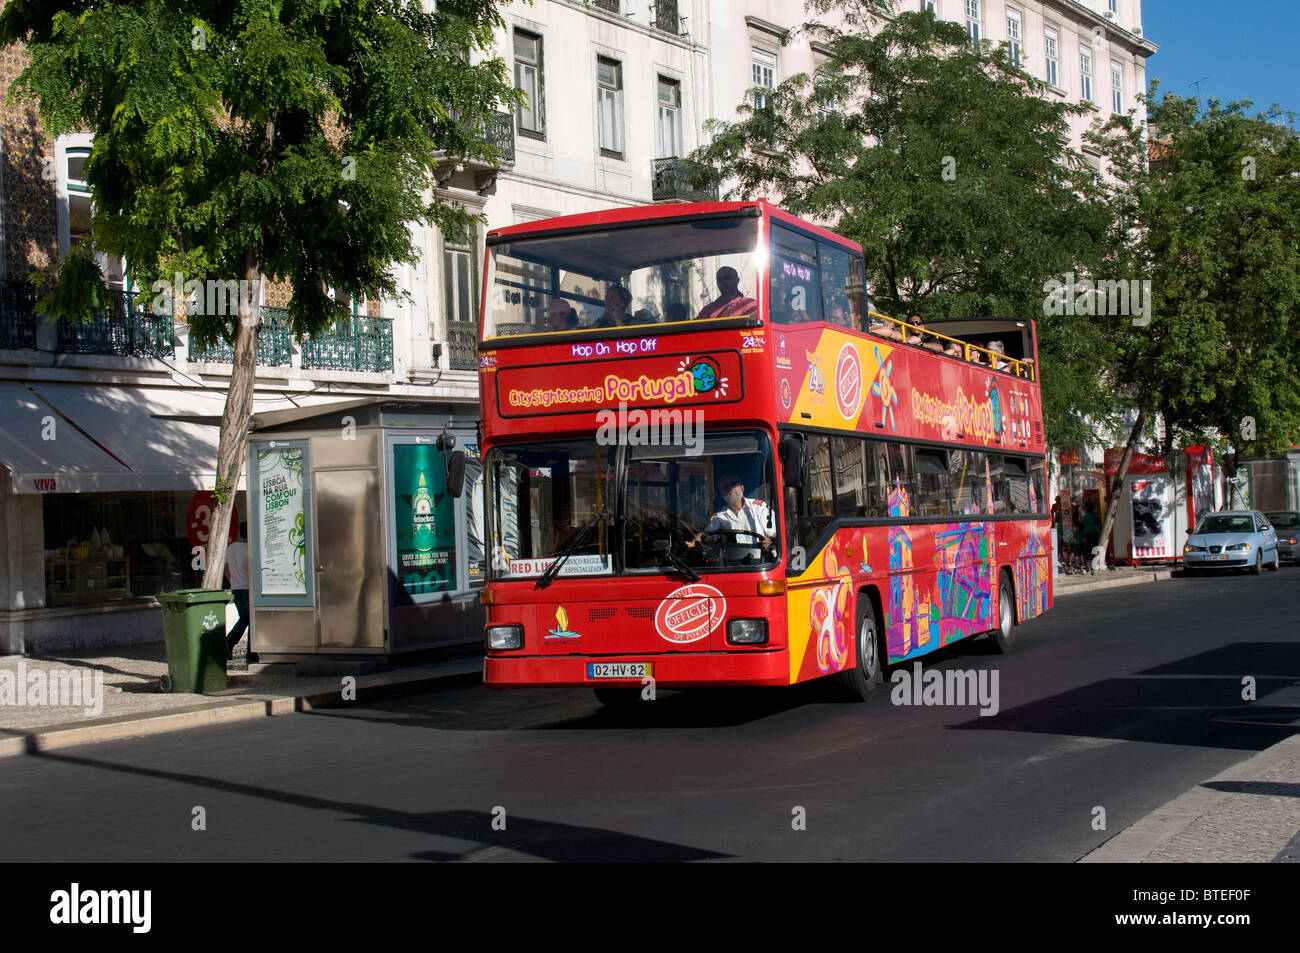 A Citysightseeing Portugal open top double deck bus carries tourist theough the Restaurdores area of Lisbon - Stock Image